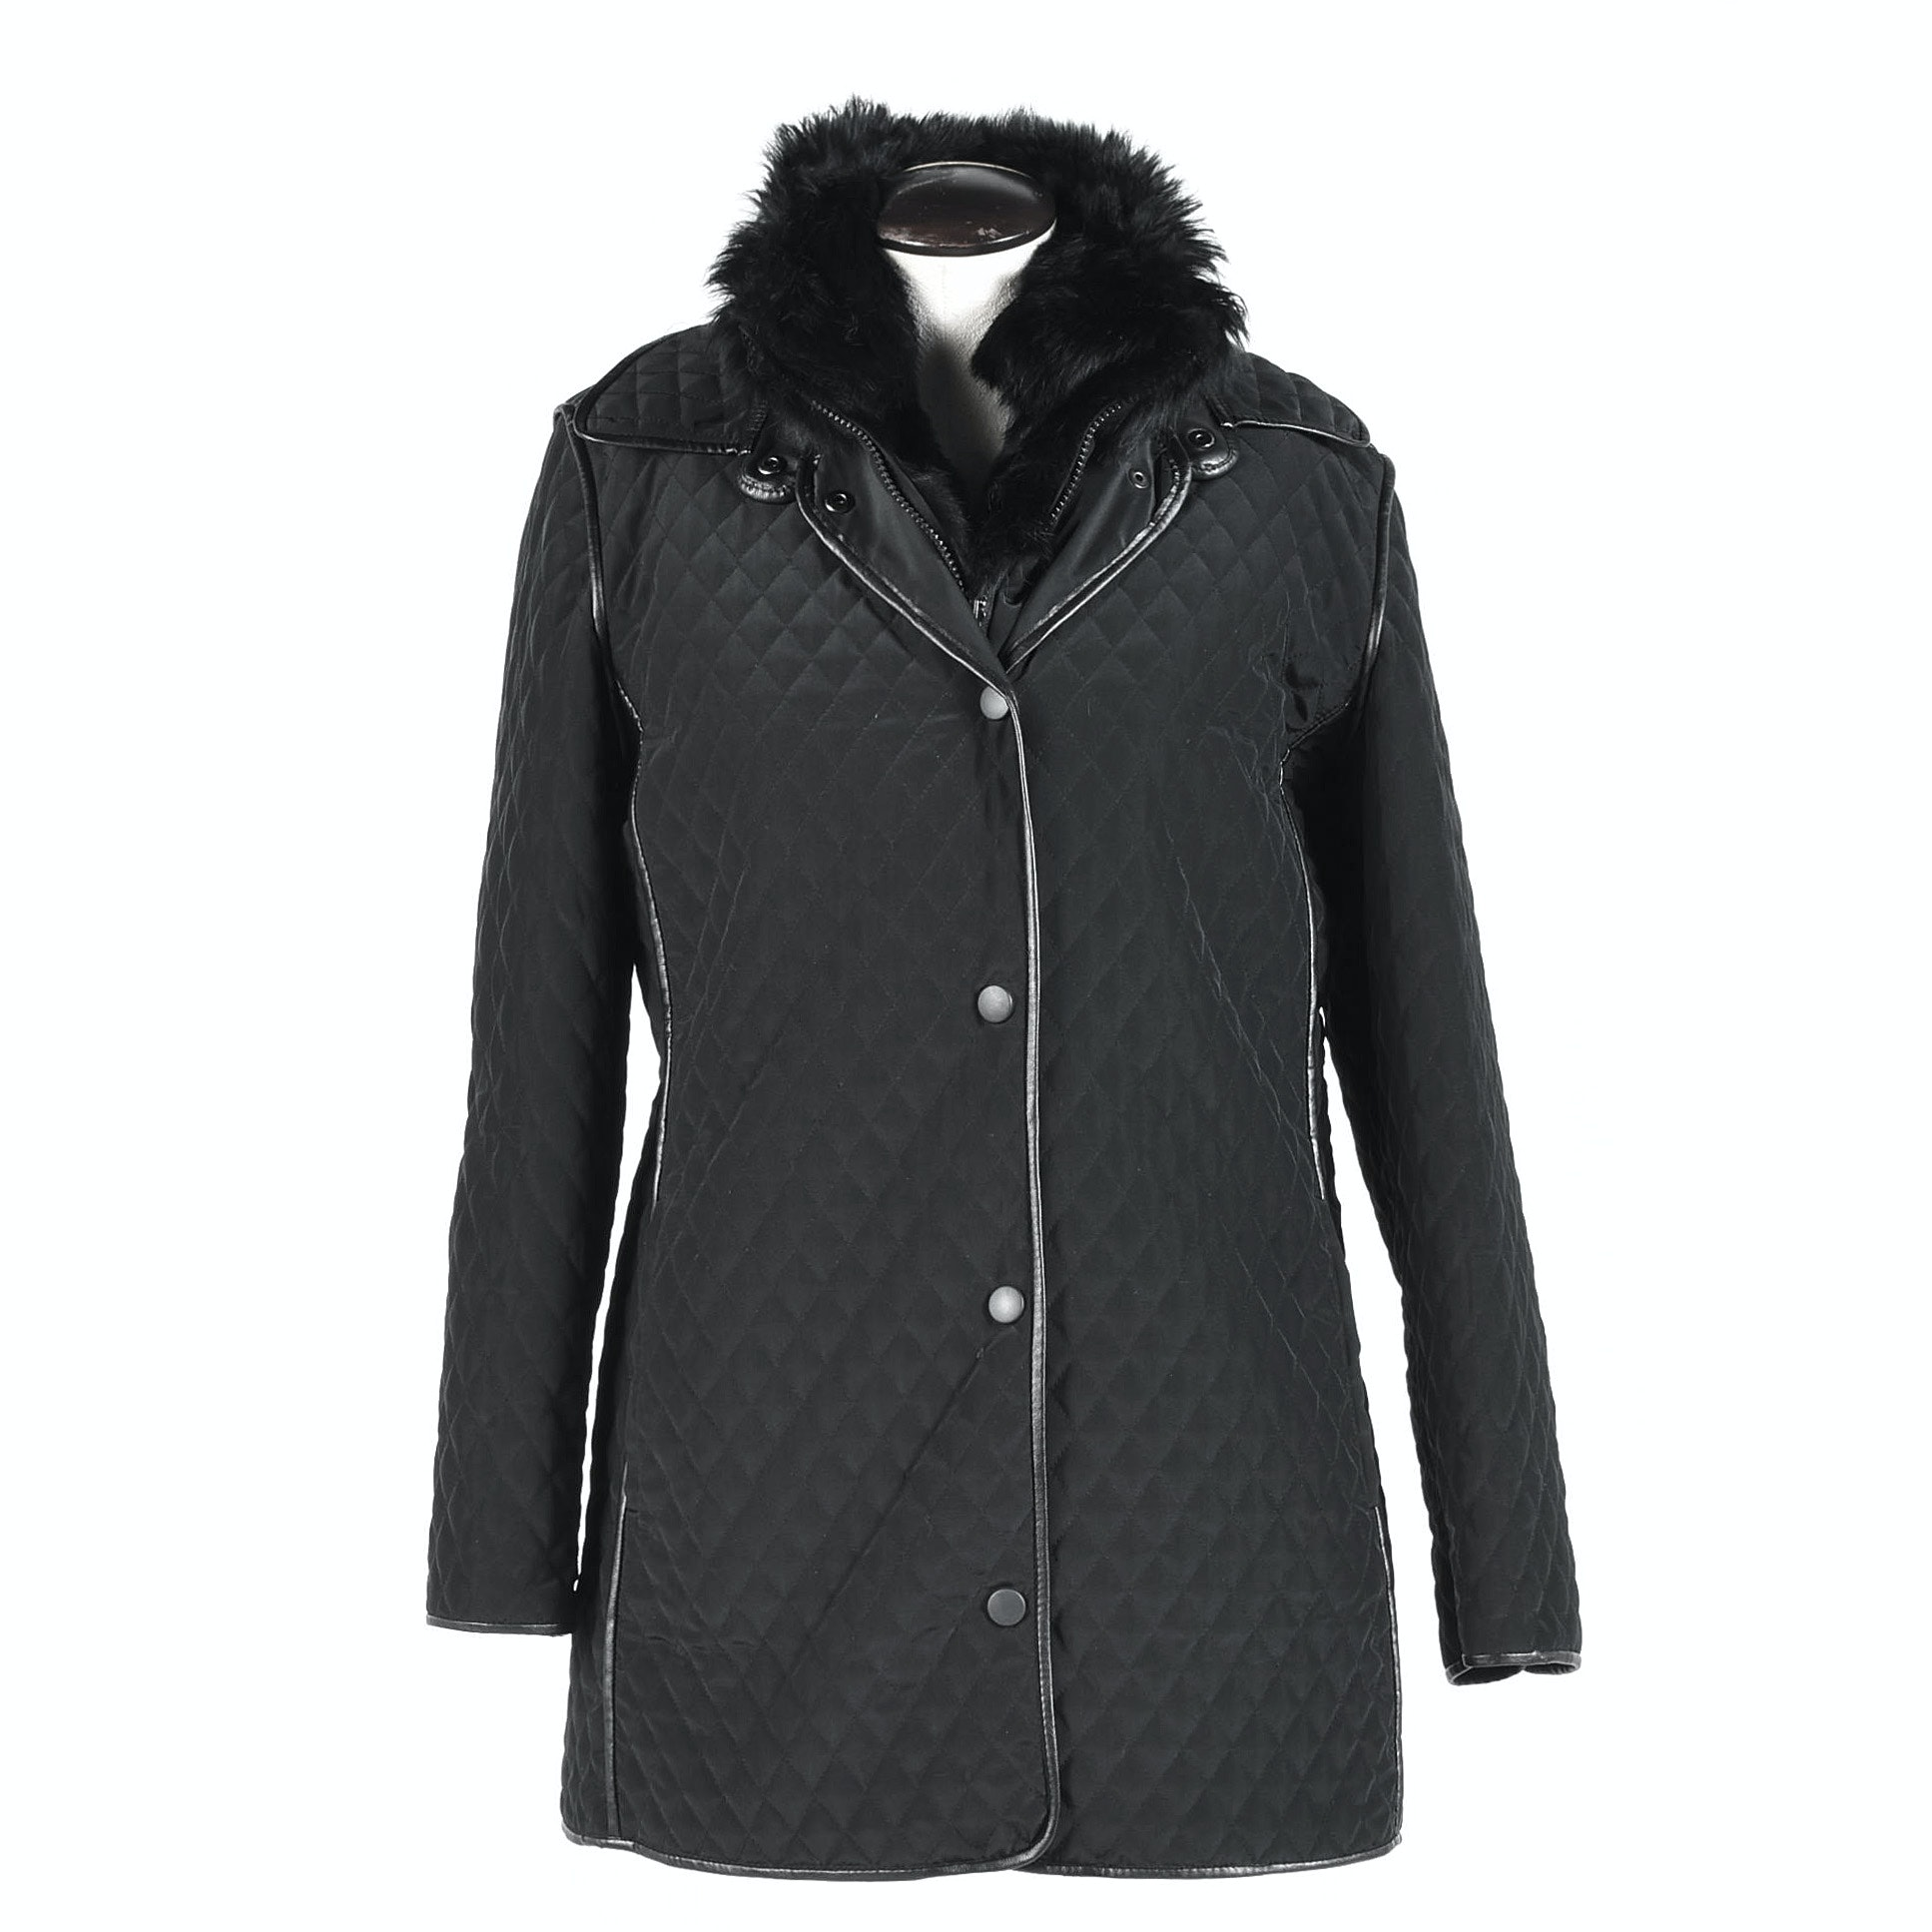 Women's Hilary Radley Black Quilted Jacket with Removable Fur Lining